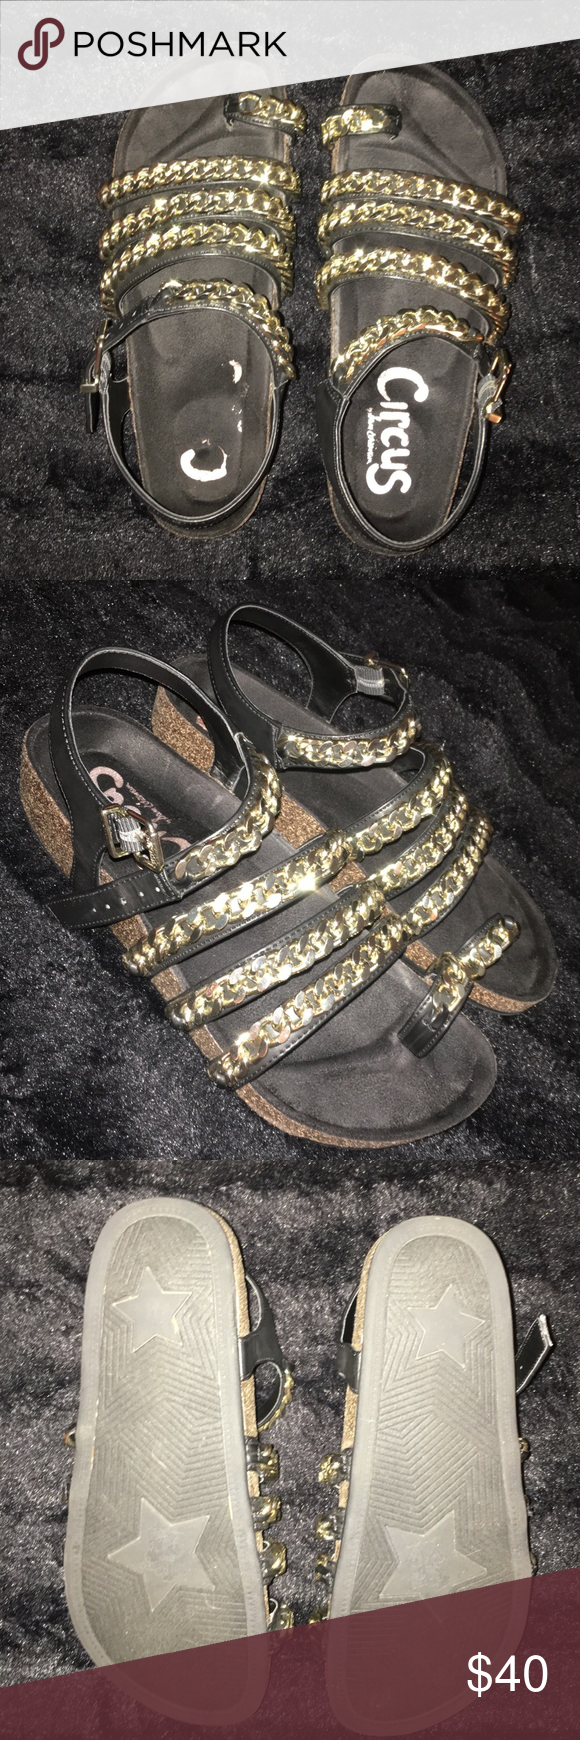 💥WEEKEND SALE💥 Sam Edelman Sandals 💥WEEKEND SALE💥 Circus by Sam Edelman. Kind of a Birkenstock style but with a little bling Size 6. I am normally a 6.5 and these fit me just fine. Did not feel too tight or rub my foot/ankle. Worn a handful of times. Obvious wear on the insole of one sandal, but other than that these are good as new! =) *Weekend Sale price is FIRM. Circus by Sam Edelman Shoes Sandals